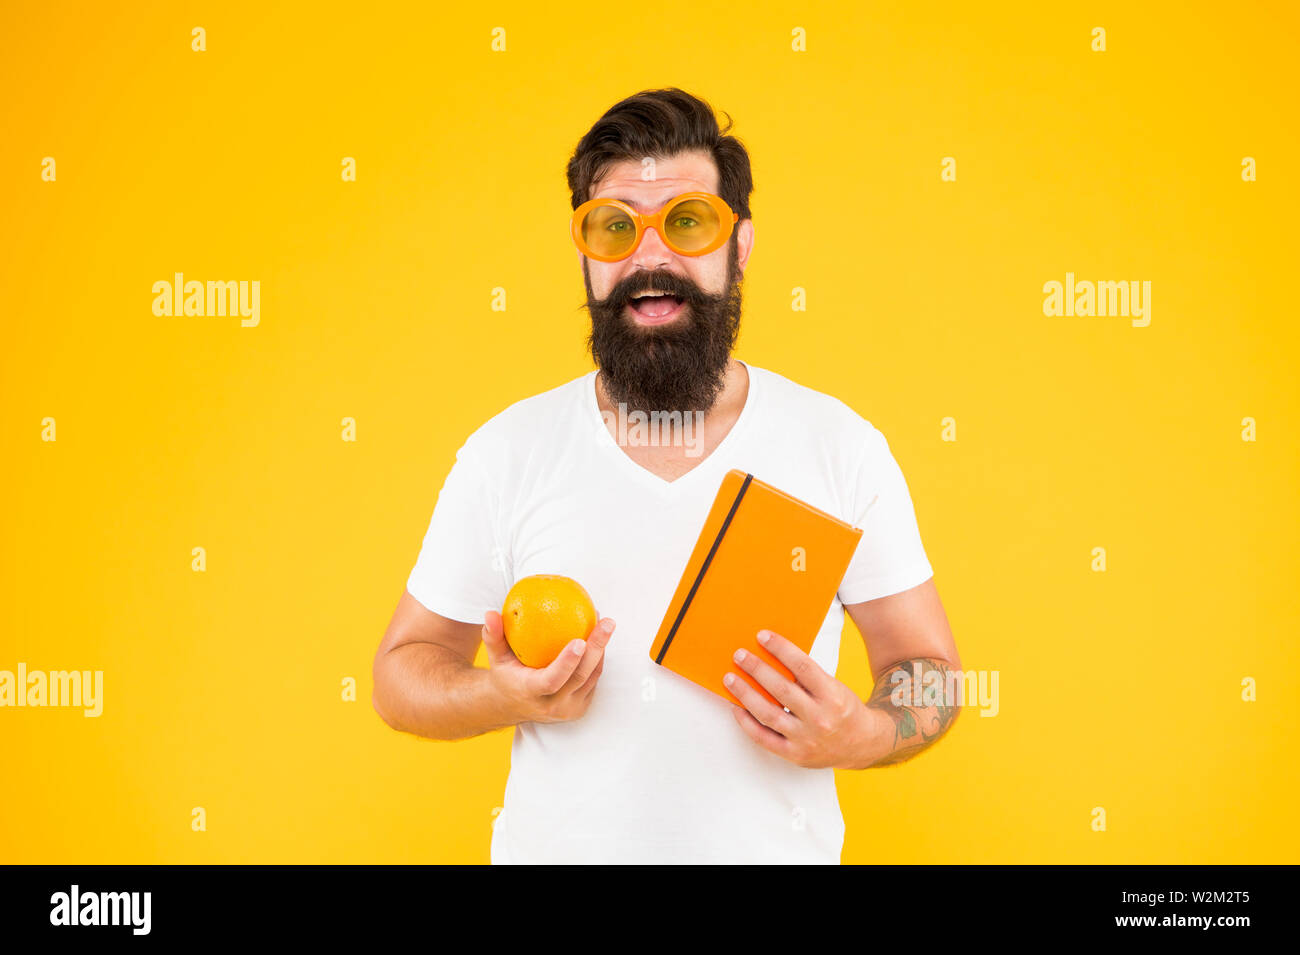 Being proud of geek in you. Geek man. Bearded man in geek glasses holding orange and book on yellow background. Hipster in geek chic style choosing healthy food for brain. - Stock Image